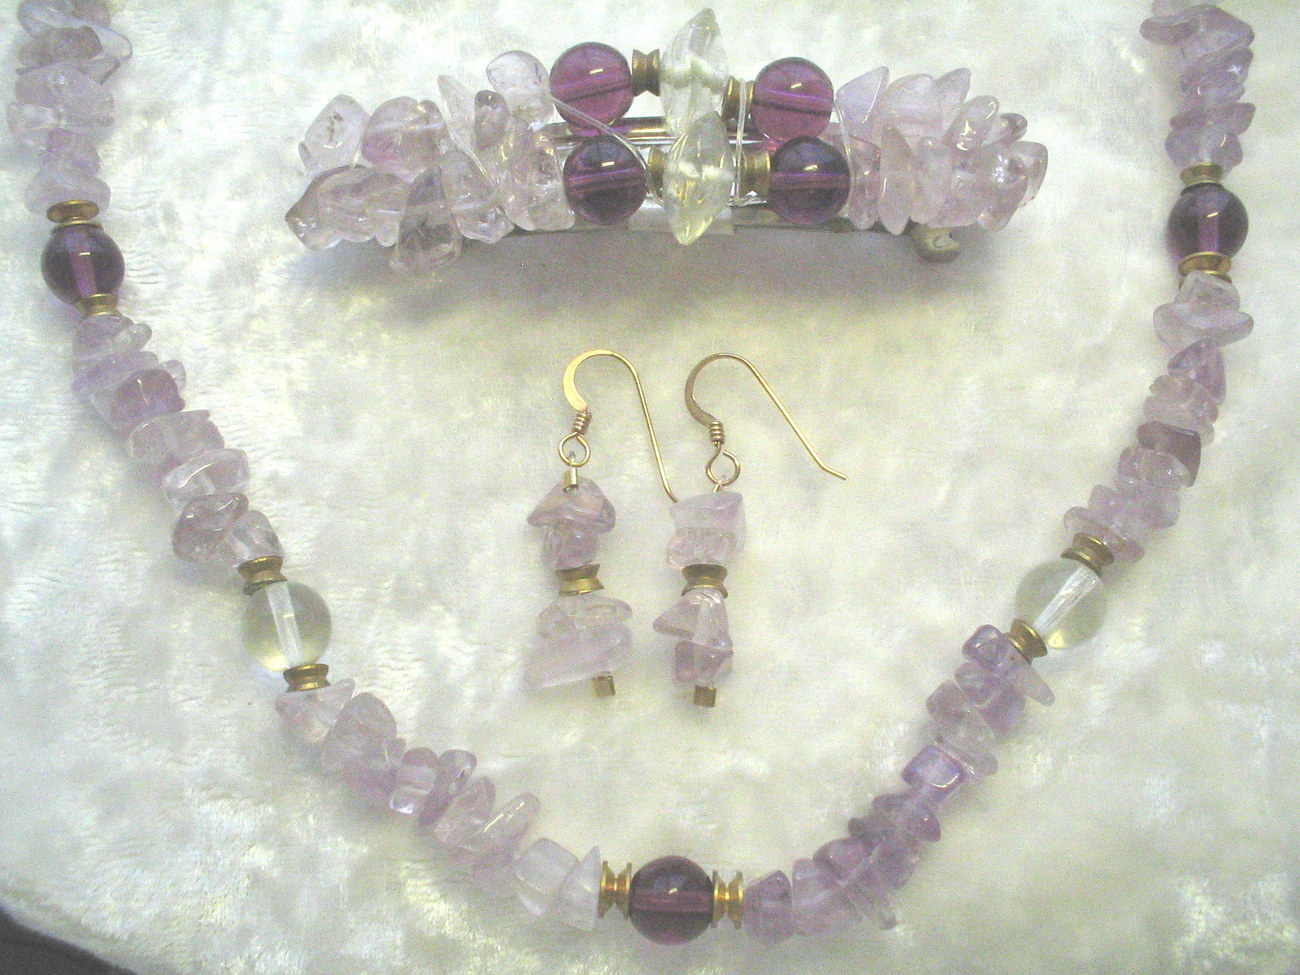 Amethyst Beaded Necklace, Earring, and Barrette Set